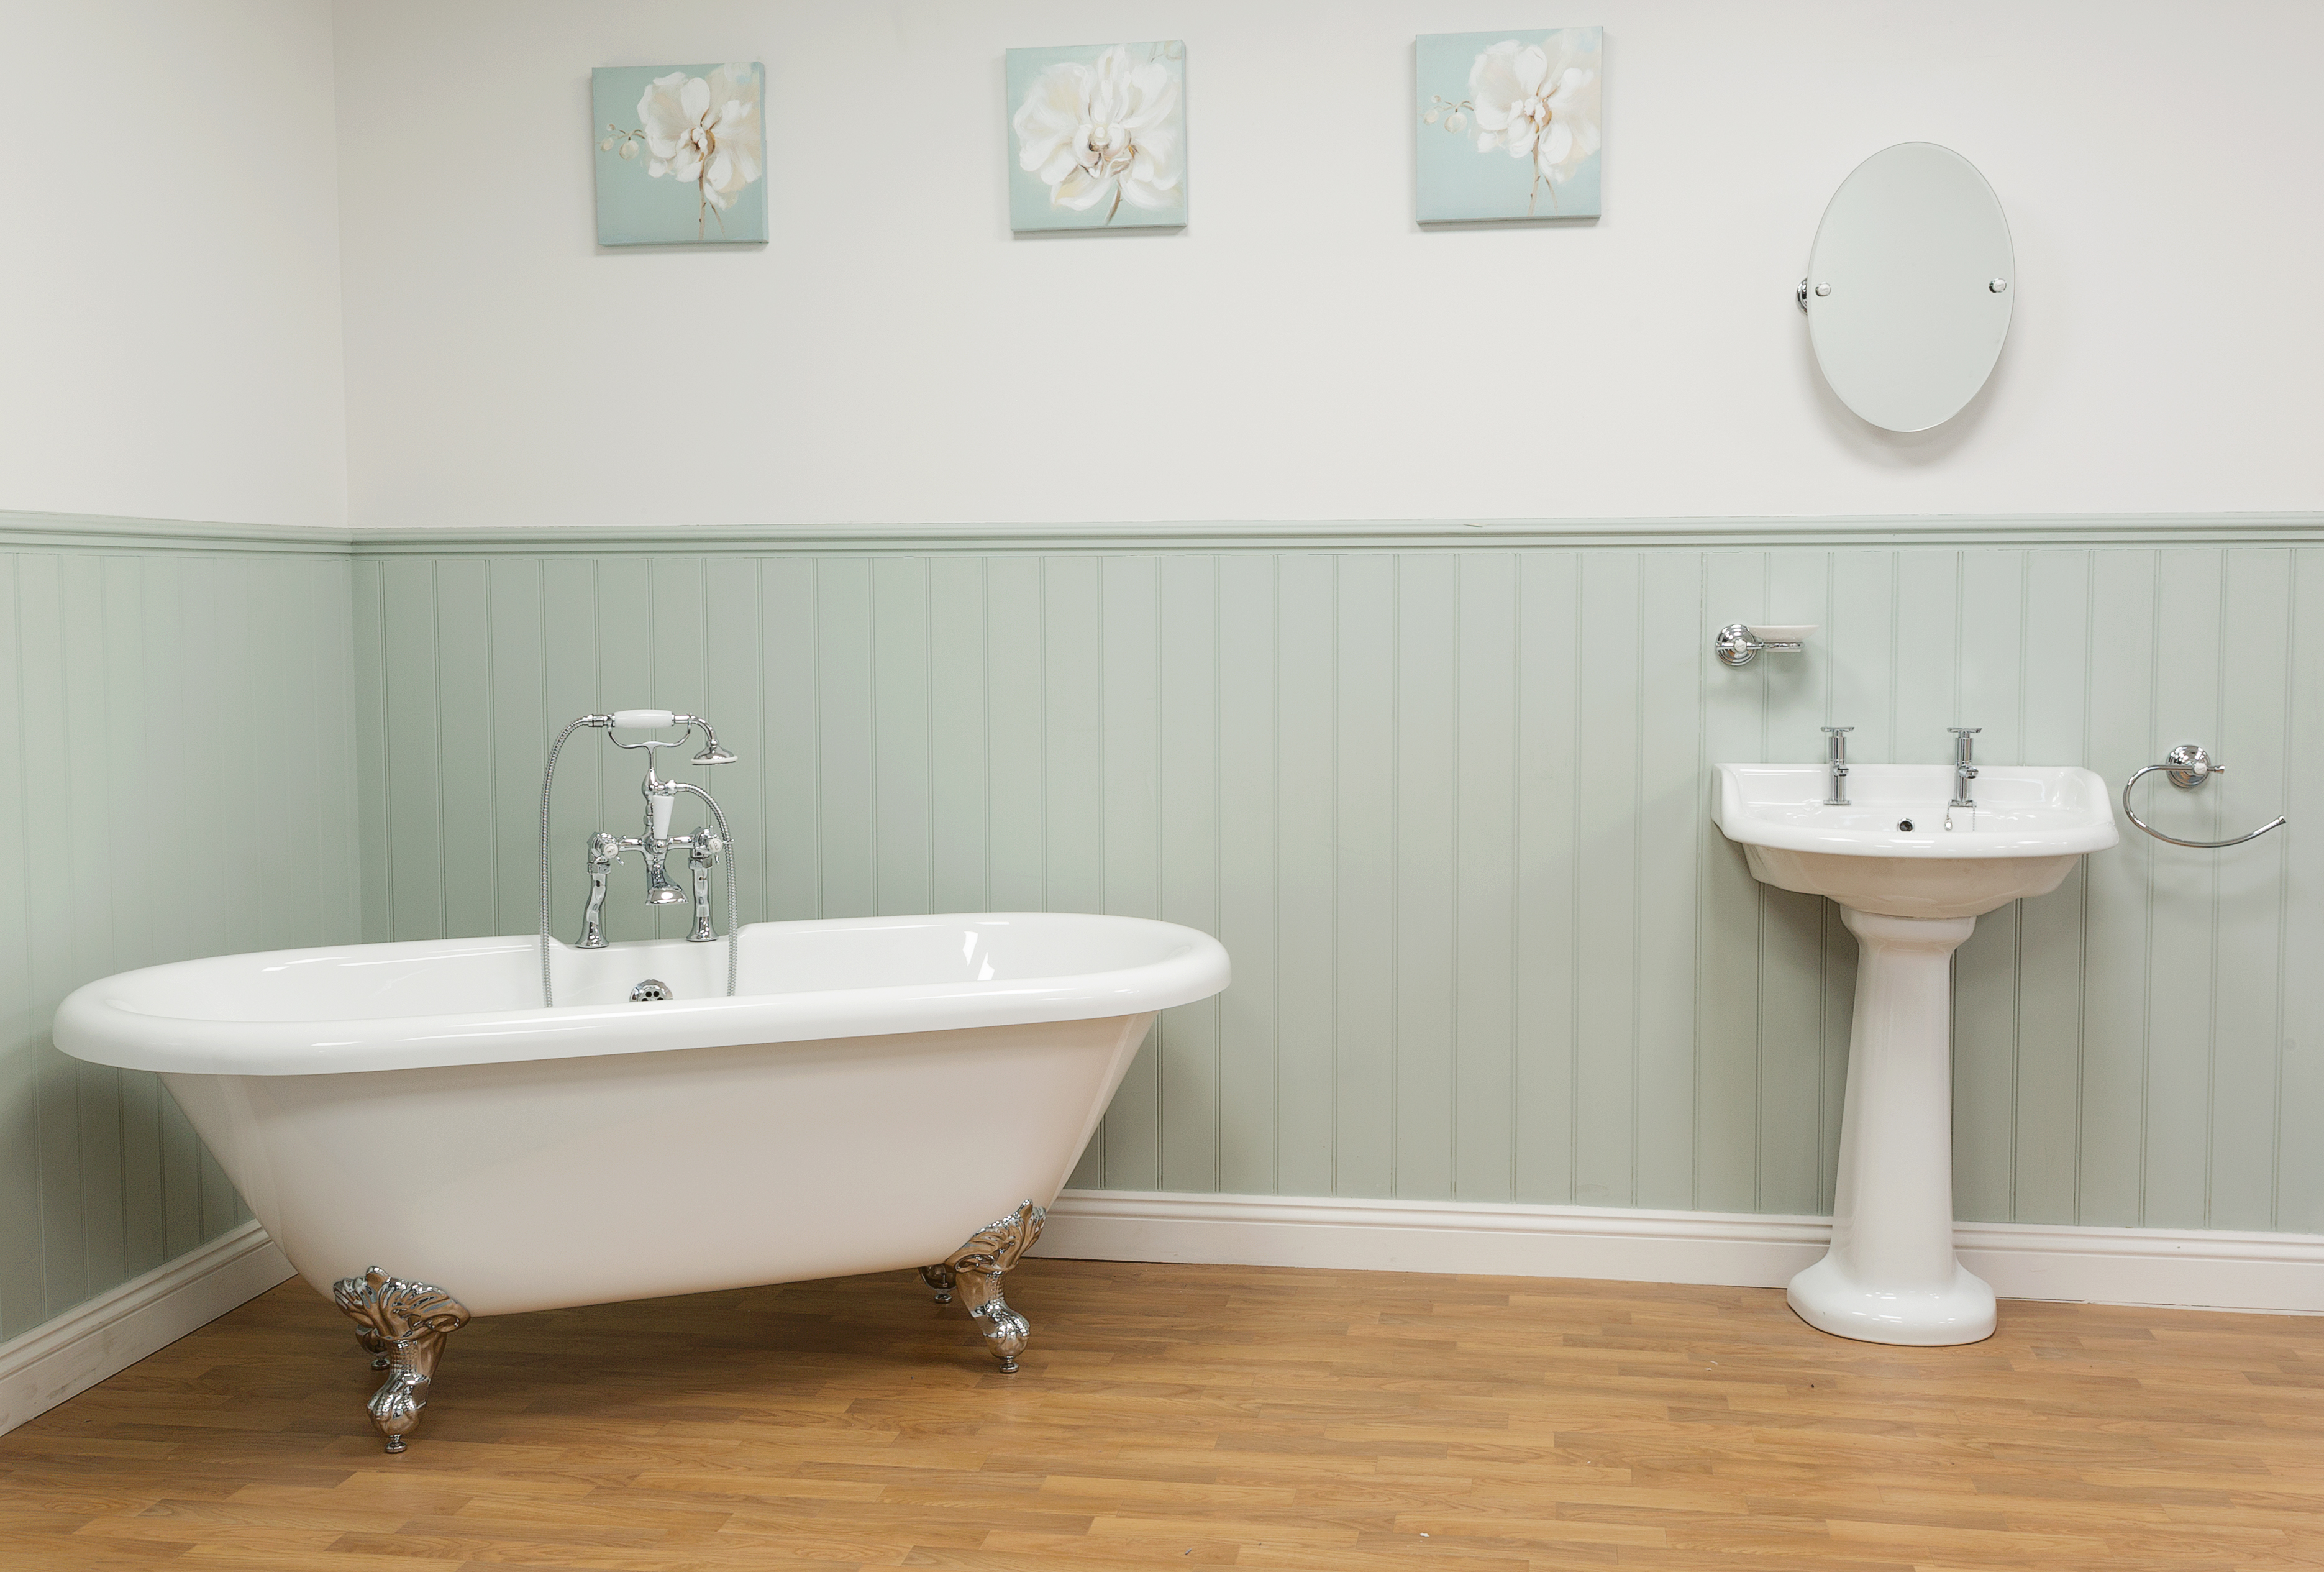 REFRESH YOUR BATHROOM! WALL MOUNTED ACCESSORIES